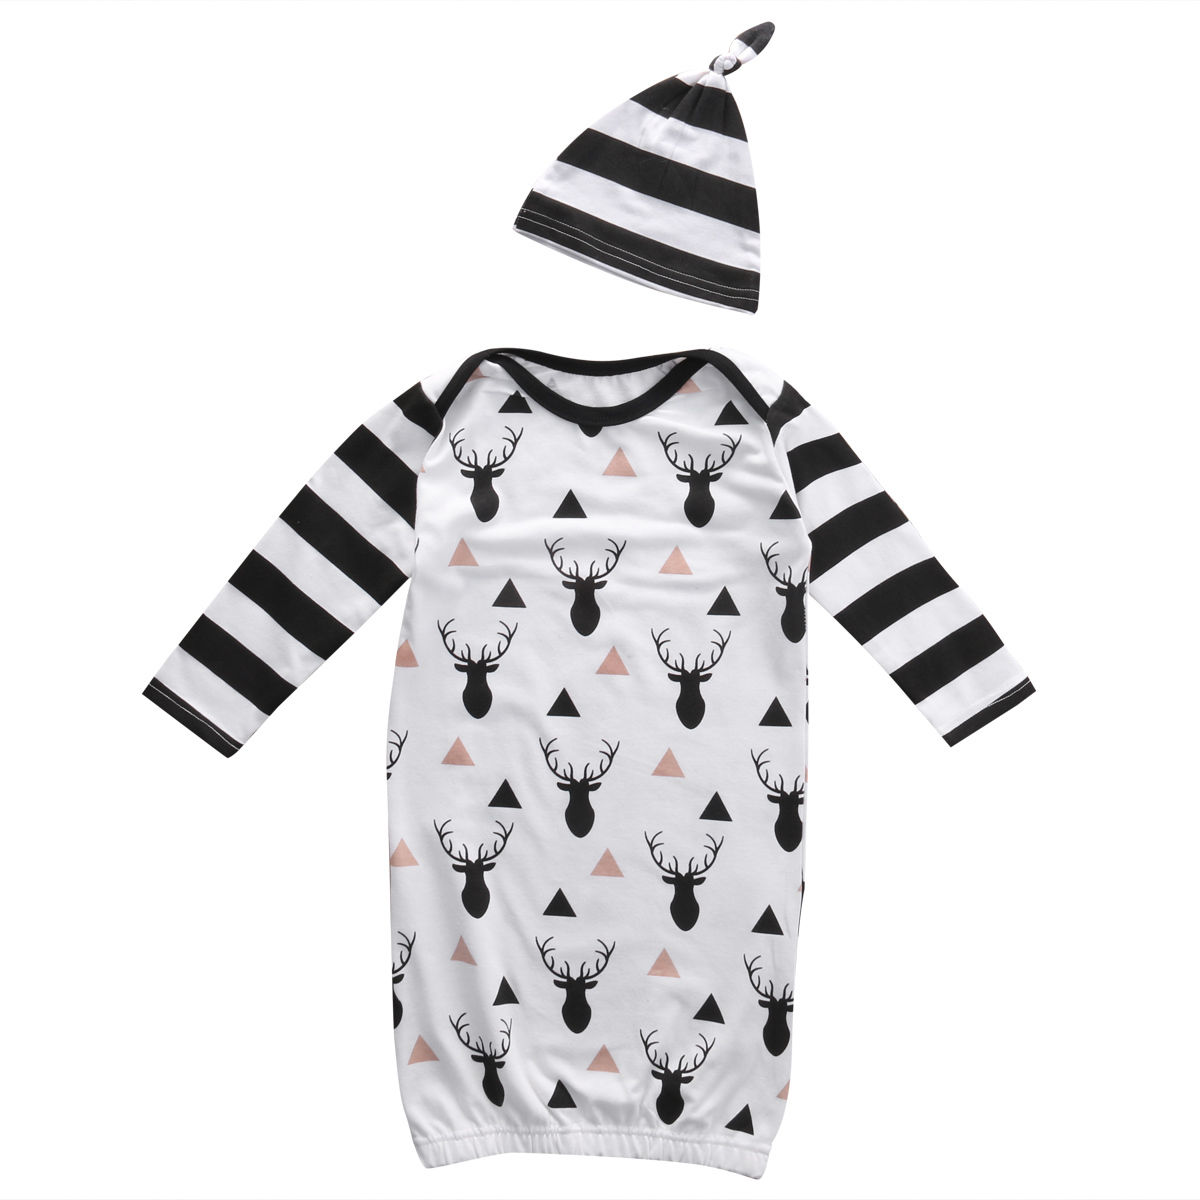 2pcs Newborn Infant Toddler Kids Baby Boy Girl Clothes T shirt Rompers Hat Sleepwear Blanket Sleepers Outfit Set